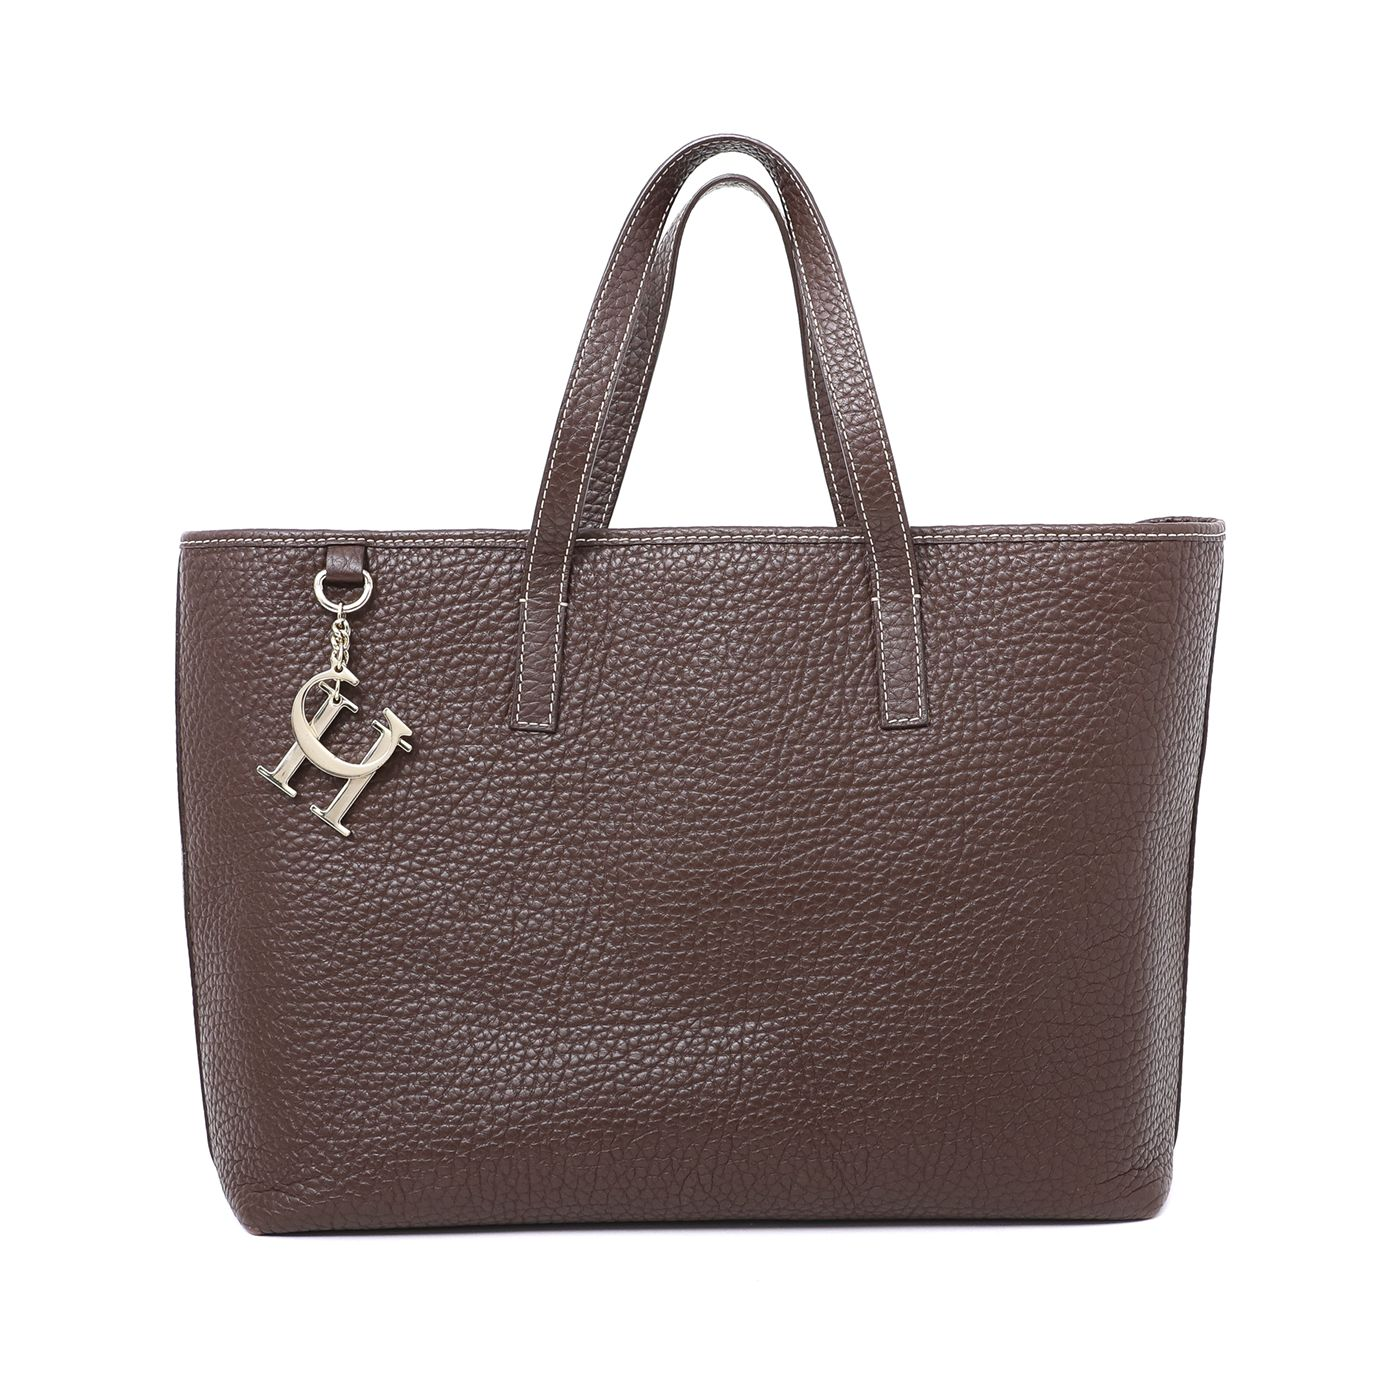 Carolina Herrera Brown Shopping Tote Bag